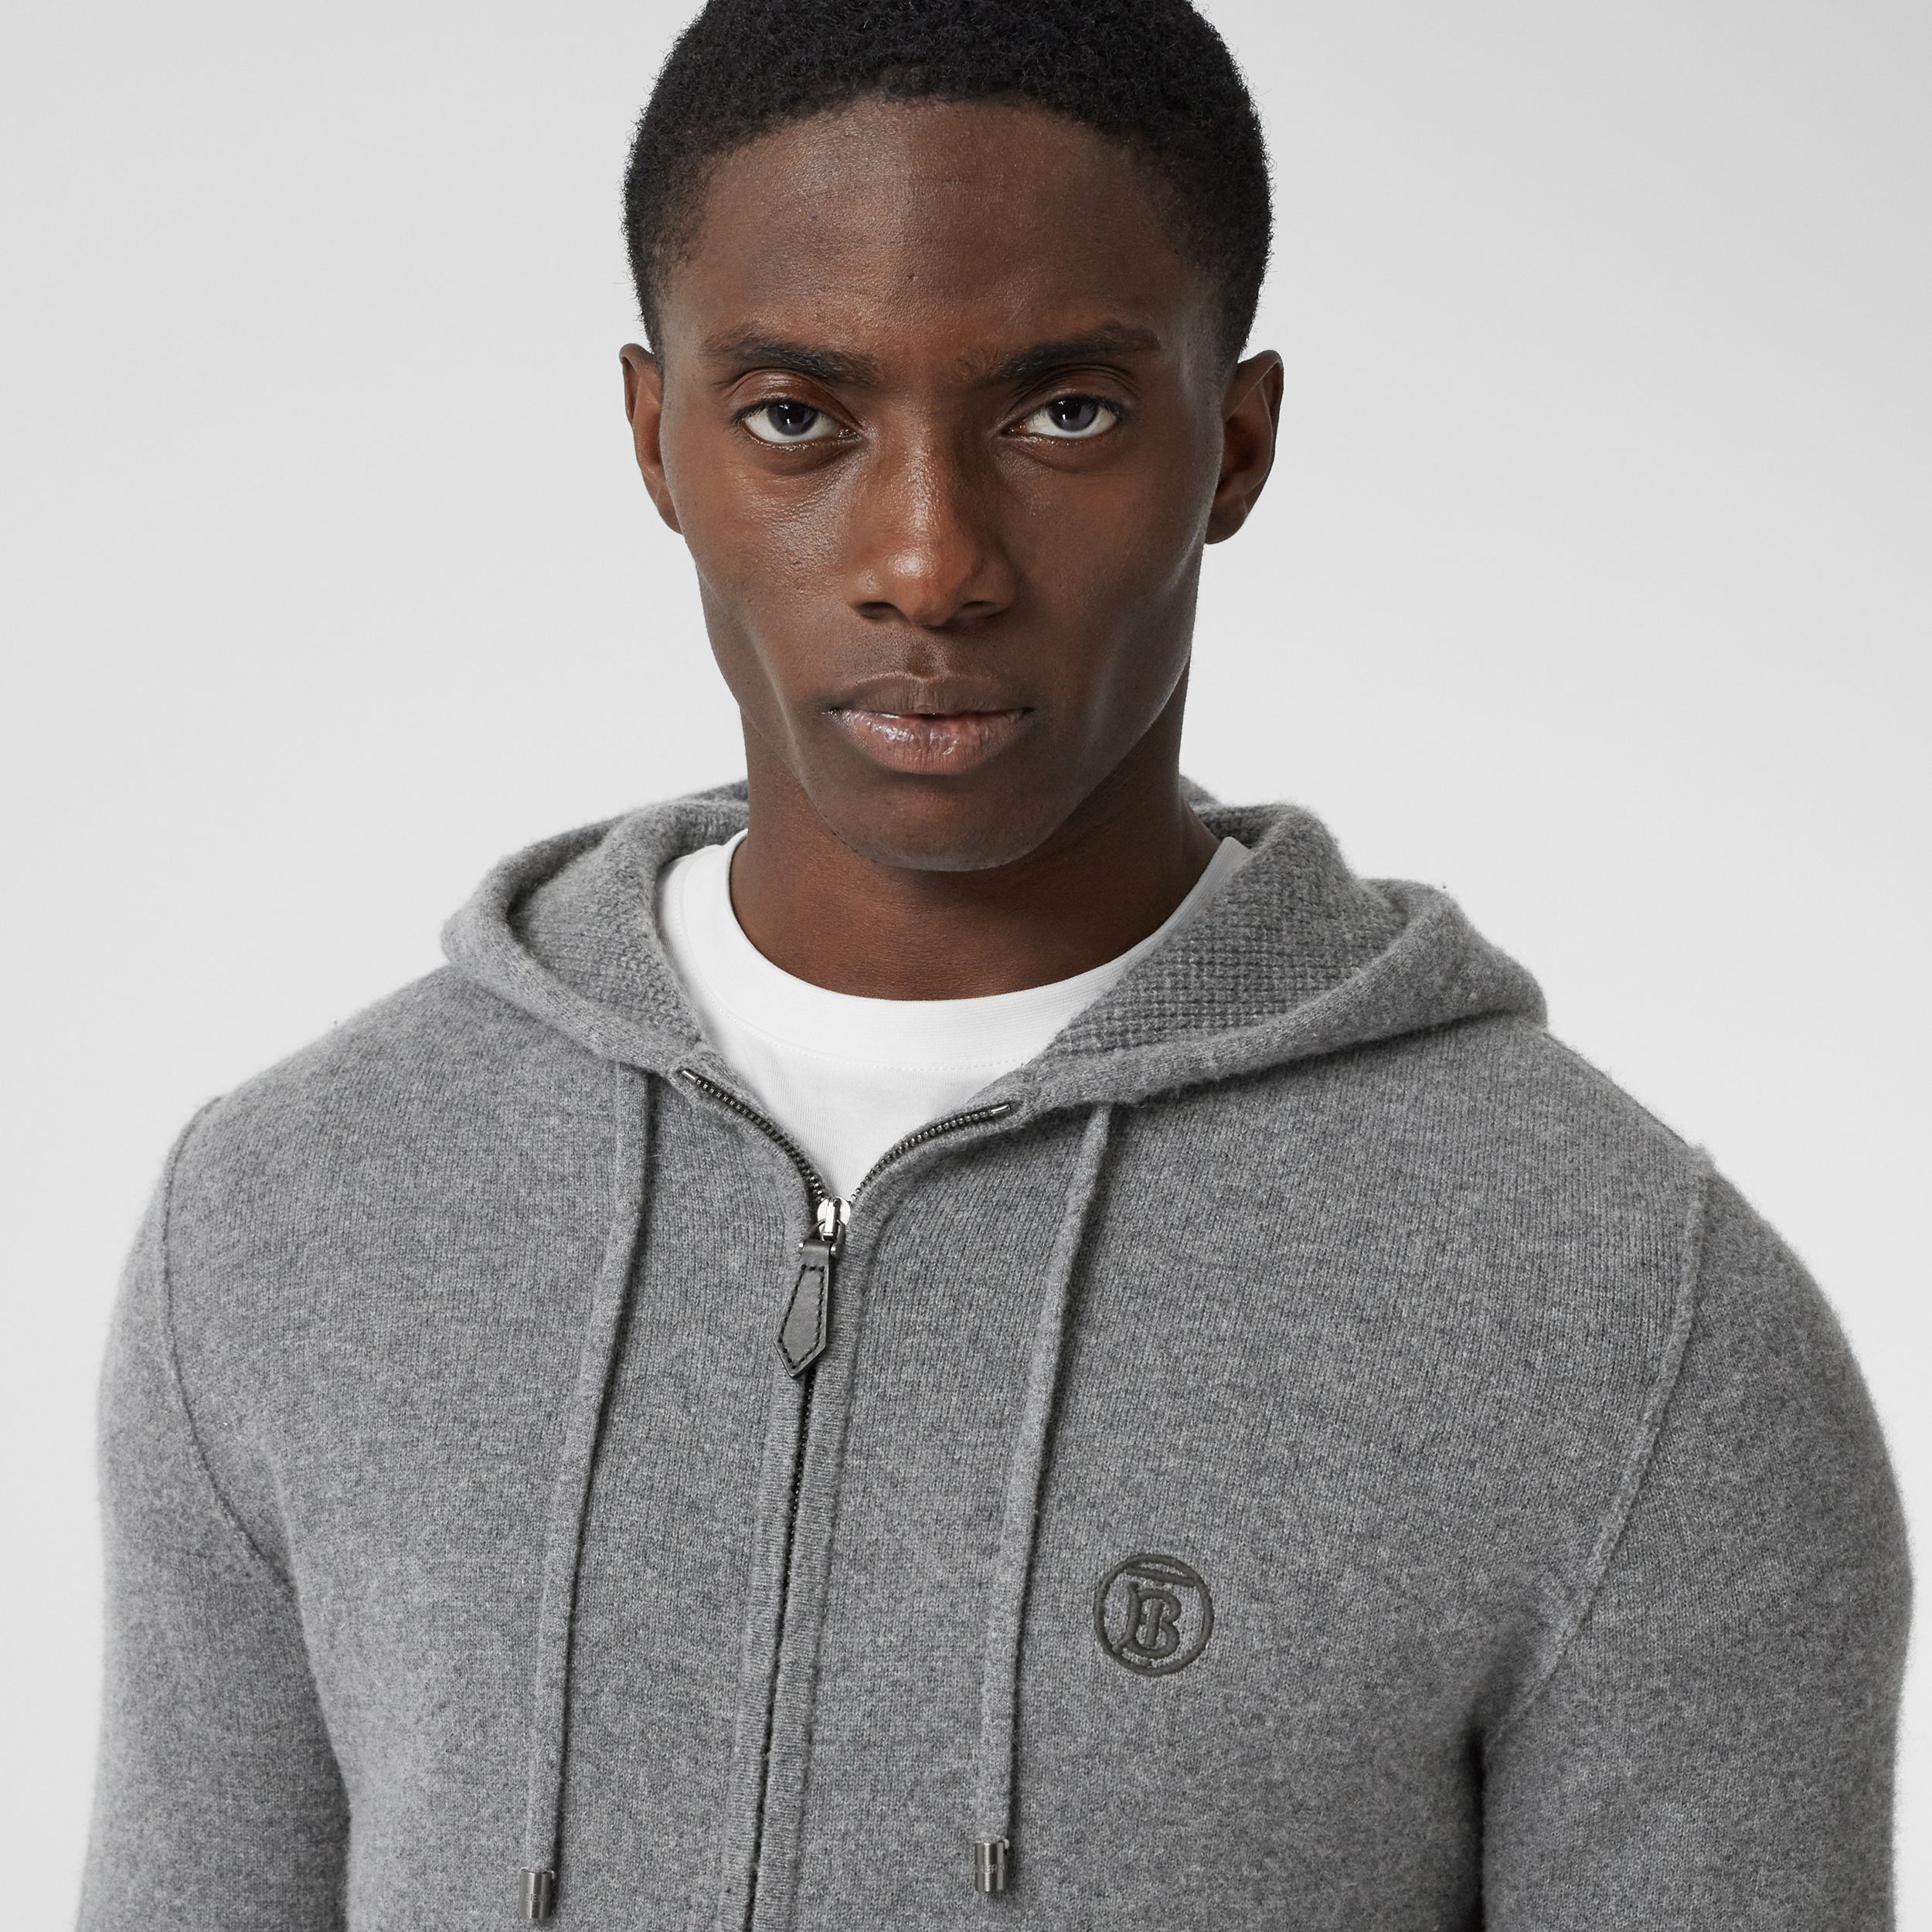 Monogram Motif Cashmere Blend Hooded Top in Mid Grey Melange - Men | Burberry Australia - 2